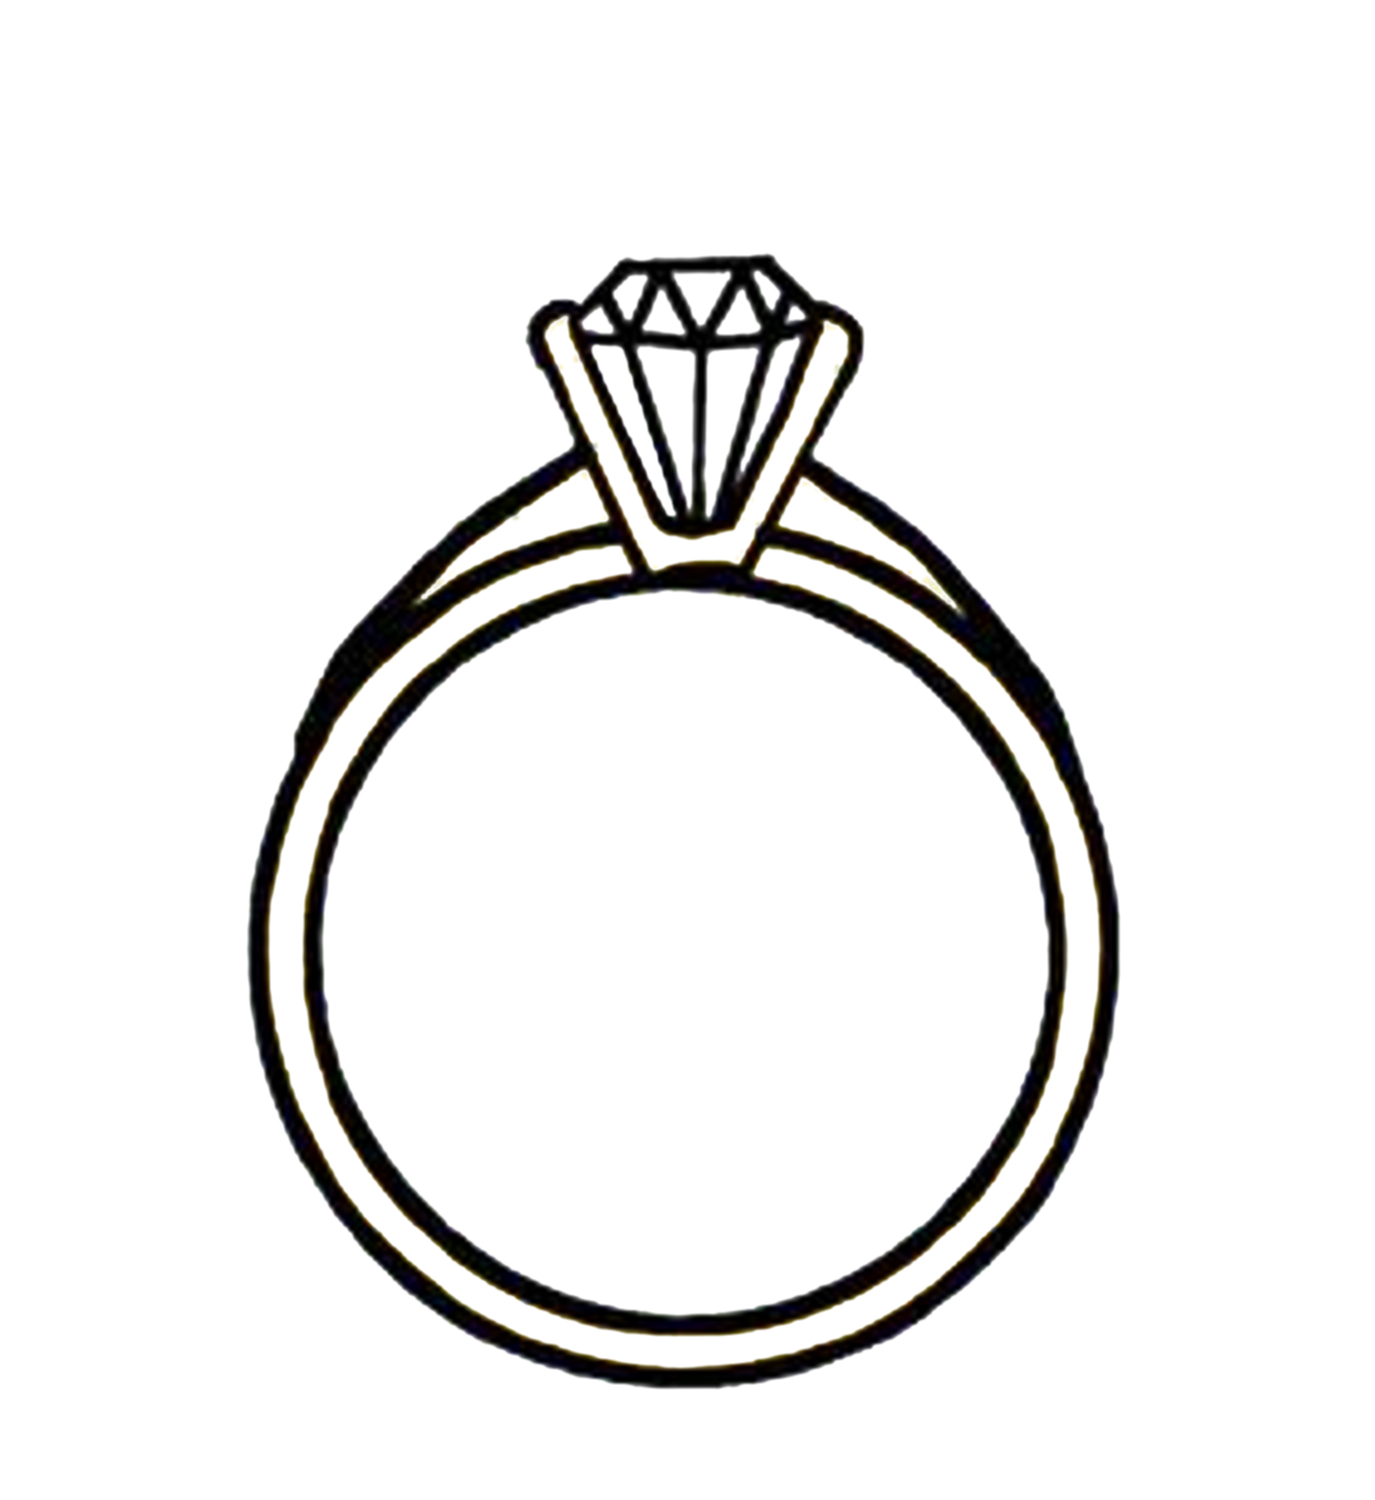 Double wedding rings clipart free jpg black and white library Free Clip art of Wedding Rings Clipart Black and White #2996 Best ... jpg black and white library